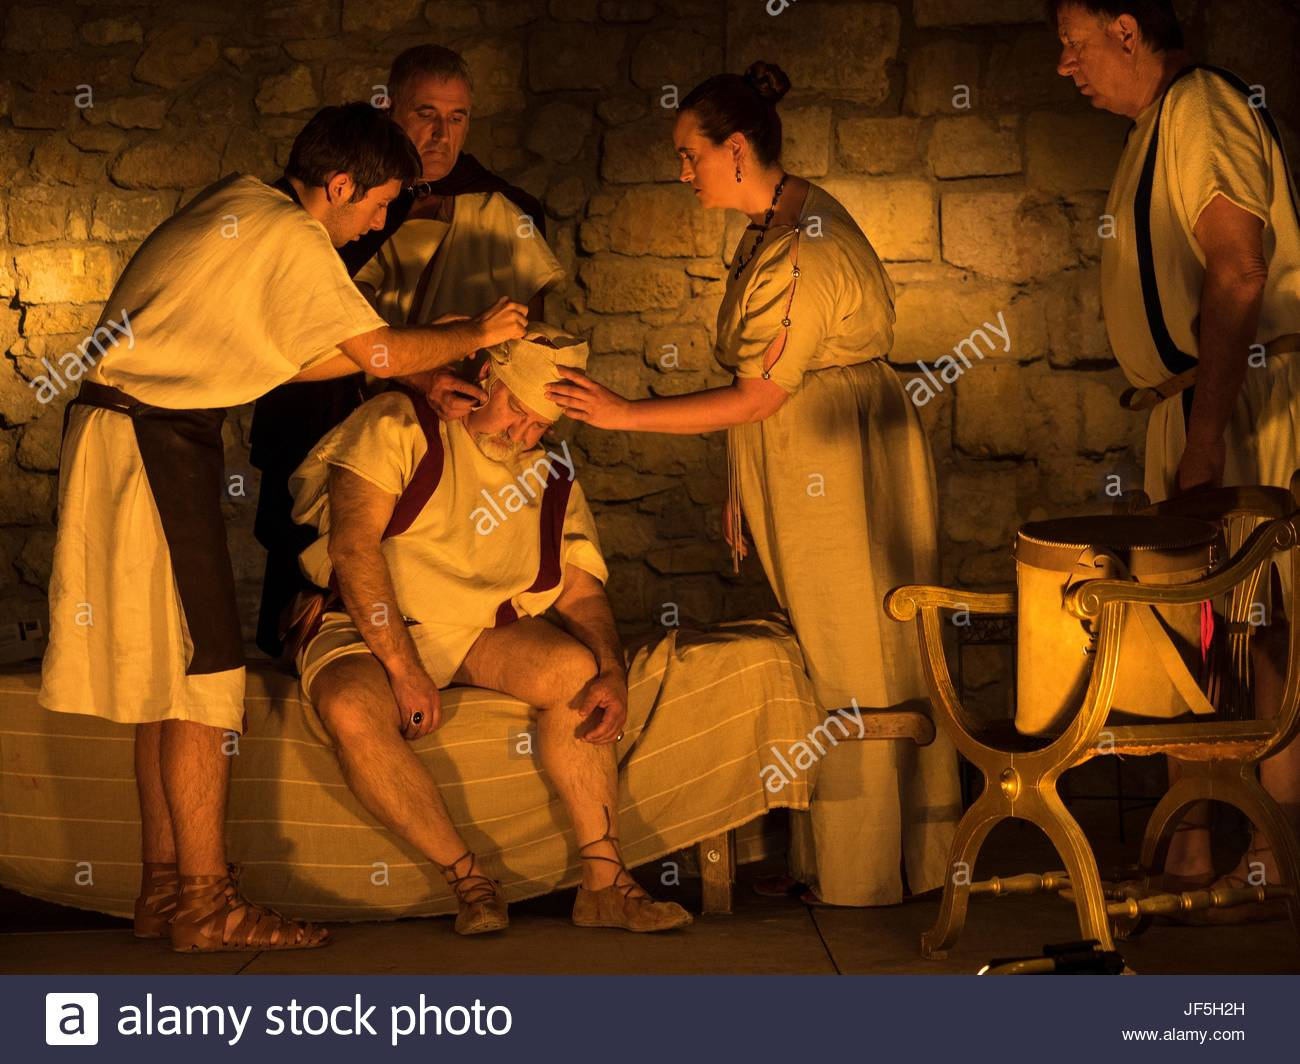 A historical reenactment of healing in Roman times. - Stock Image